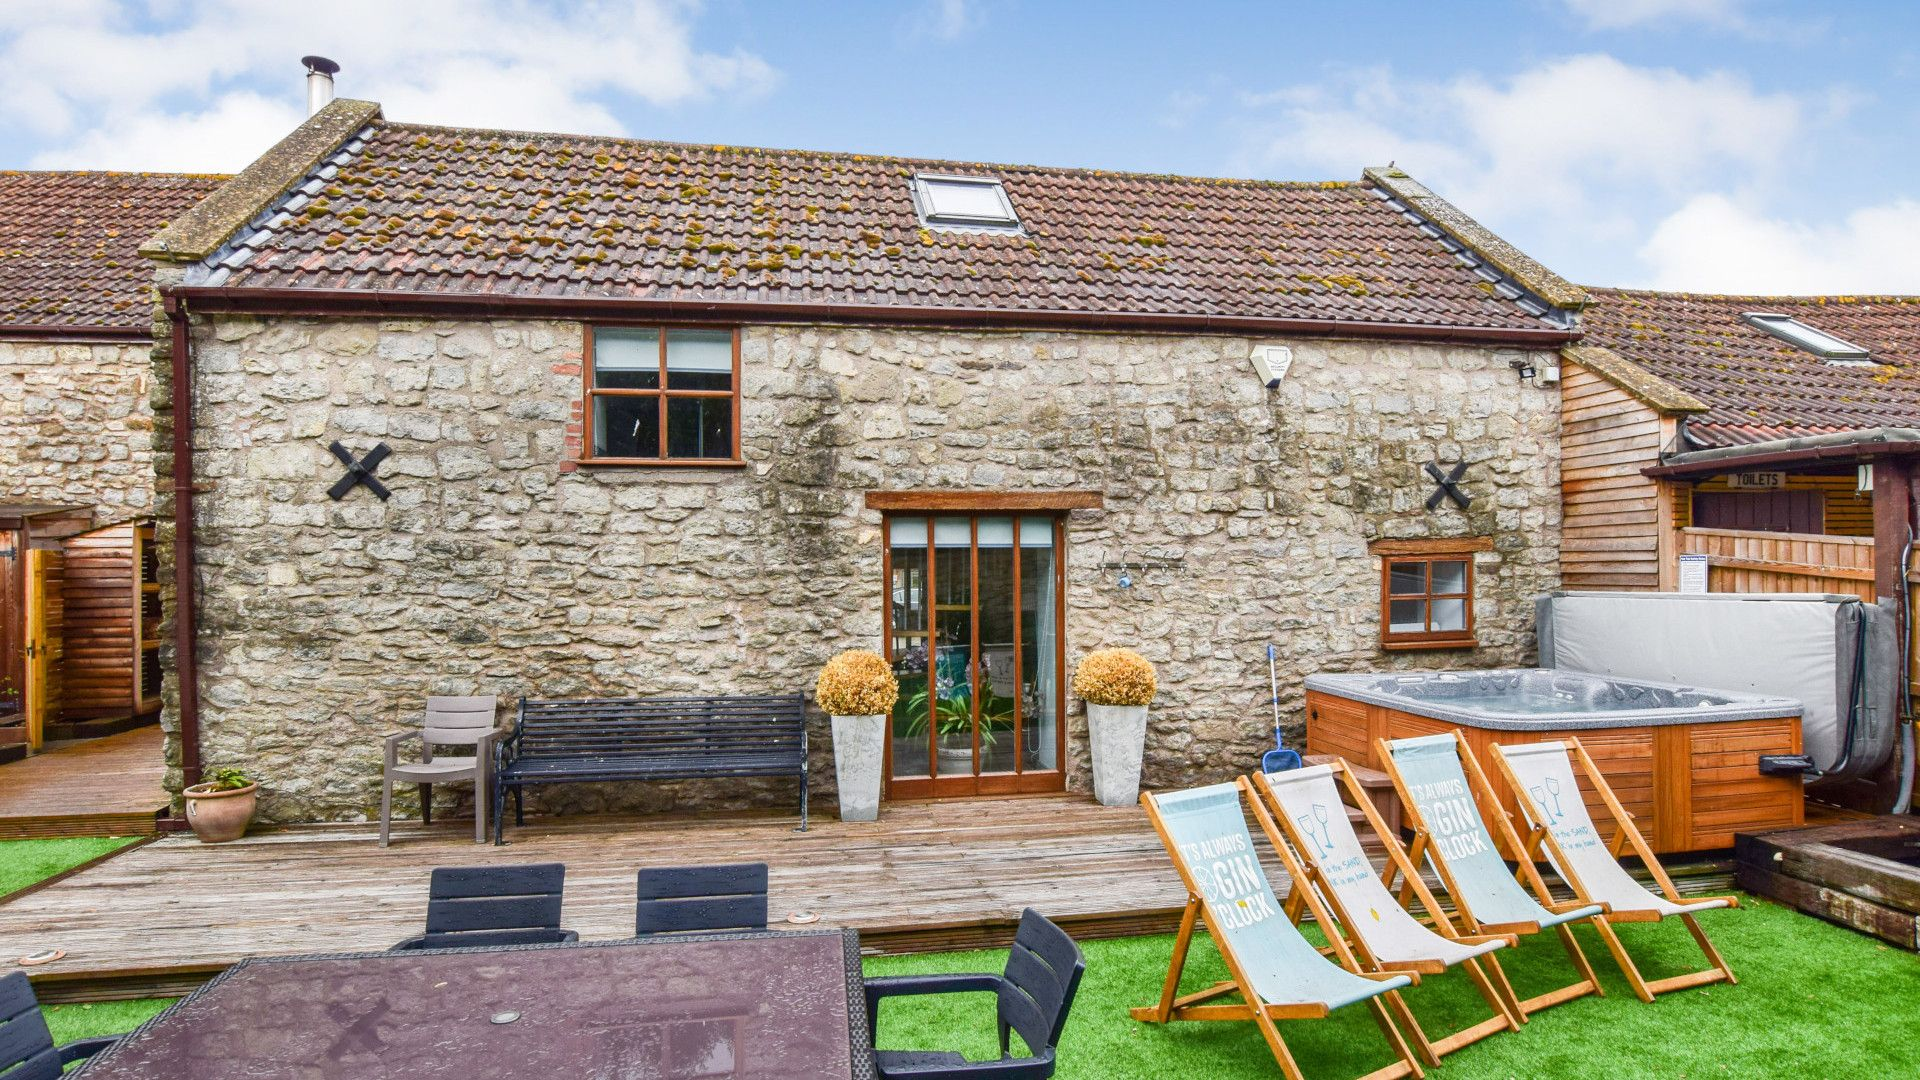 Garden with deck and hot tub, Stable Cottage at Avon Farm, Bolthole Retreats